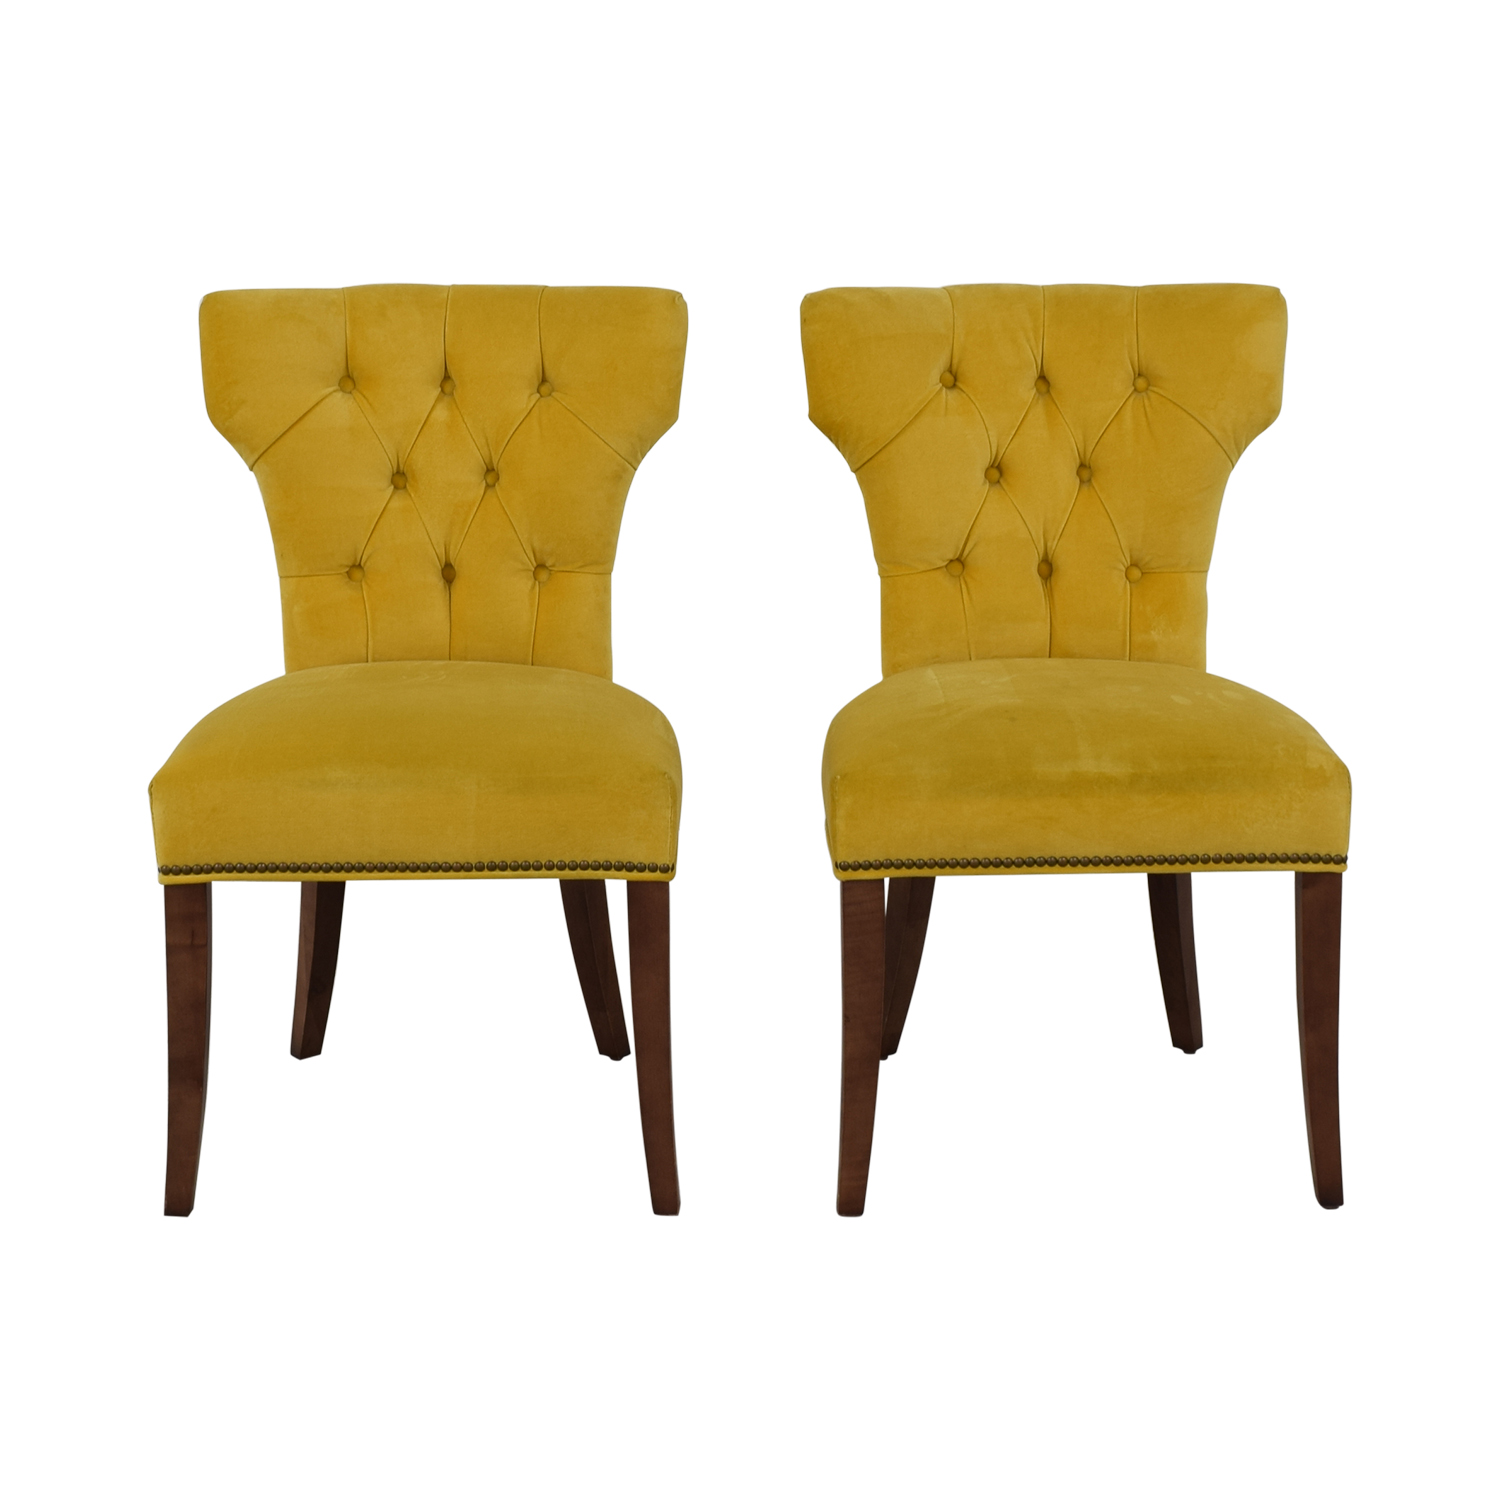 Lillian August Lillian August Farmhouse Yellow Kitchen Chairs